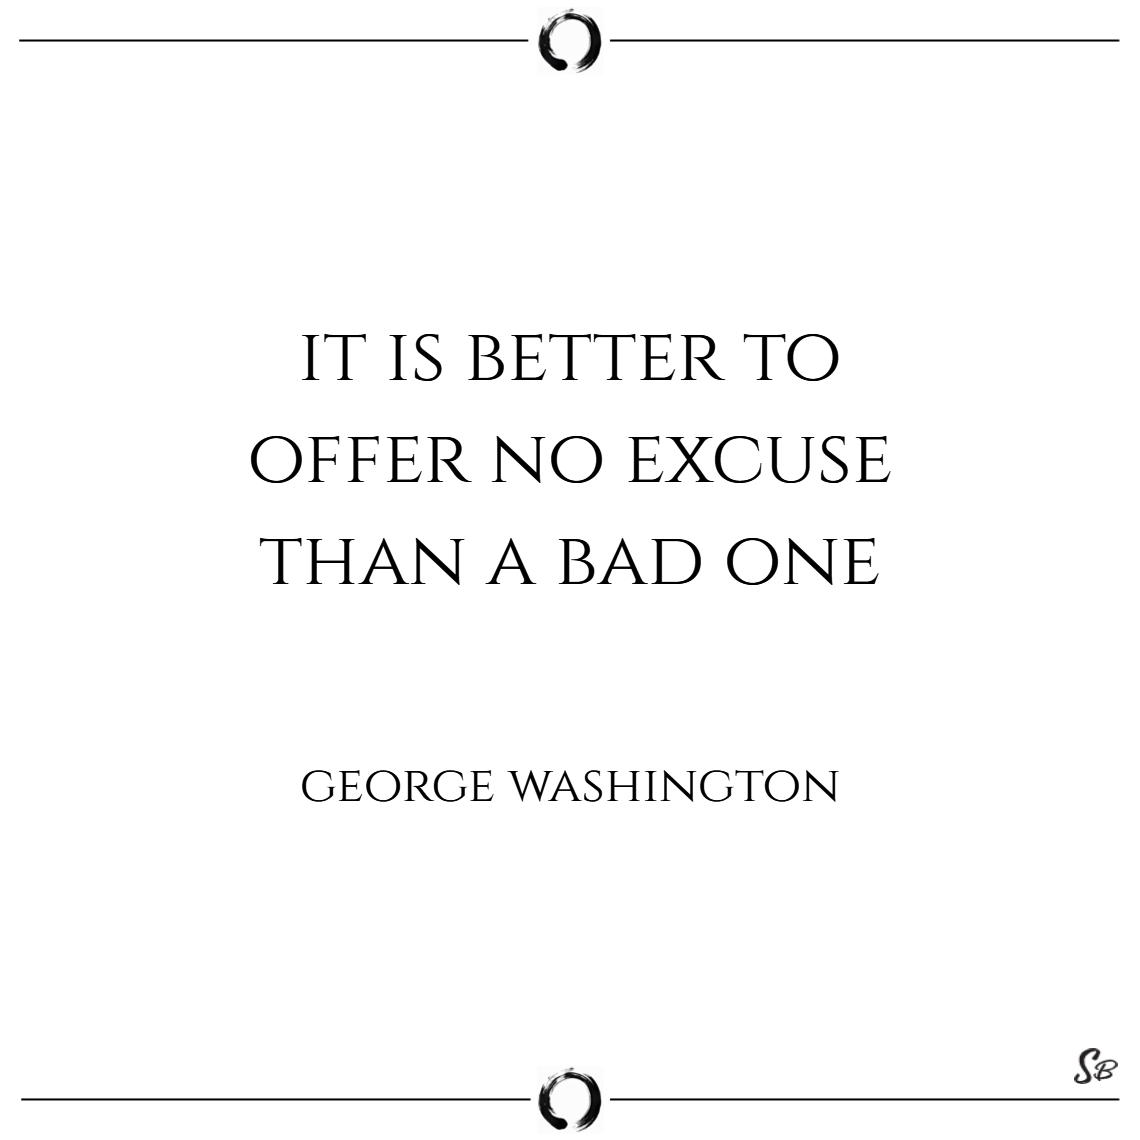 It is better to offer no excuse than a bad one. –